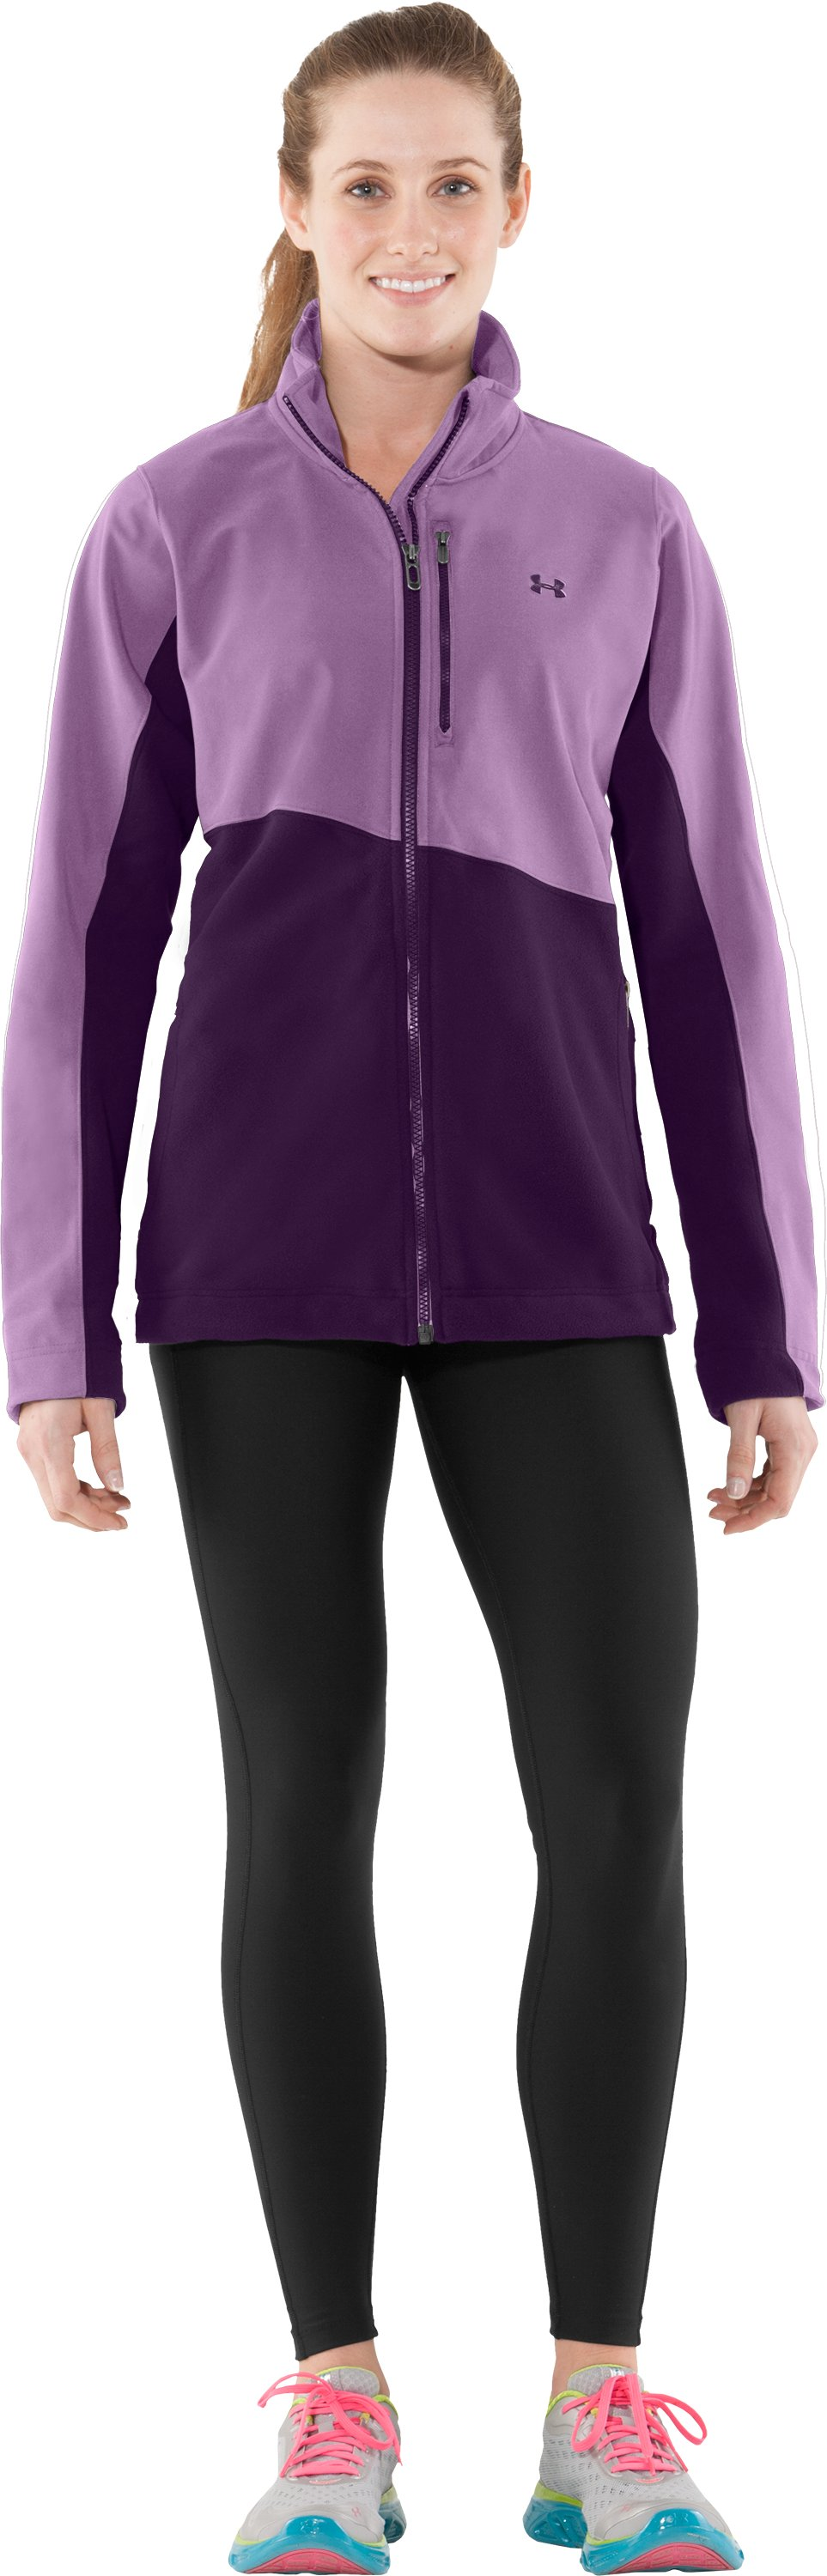 Women's Muroc Jacket, Sugar Plum, Front